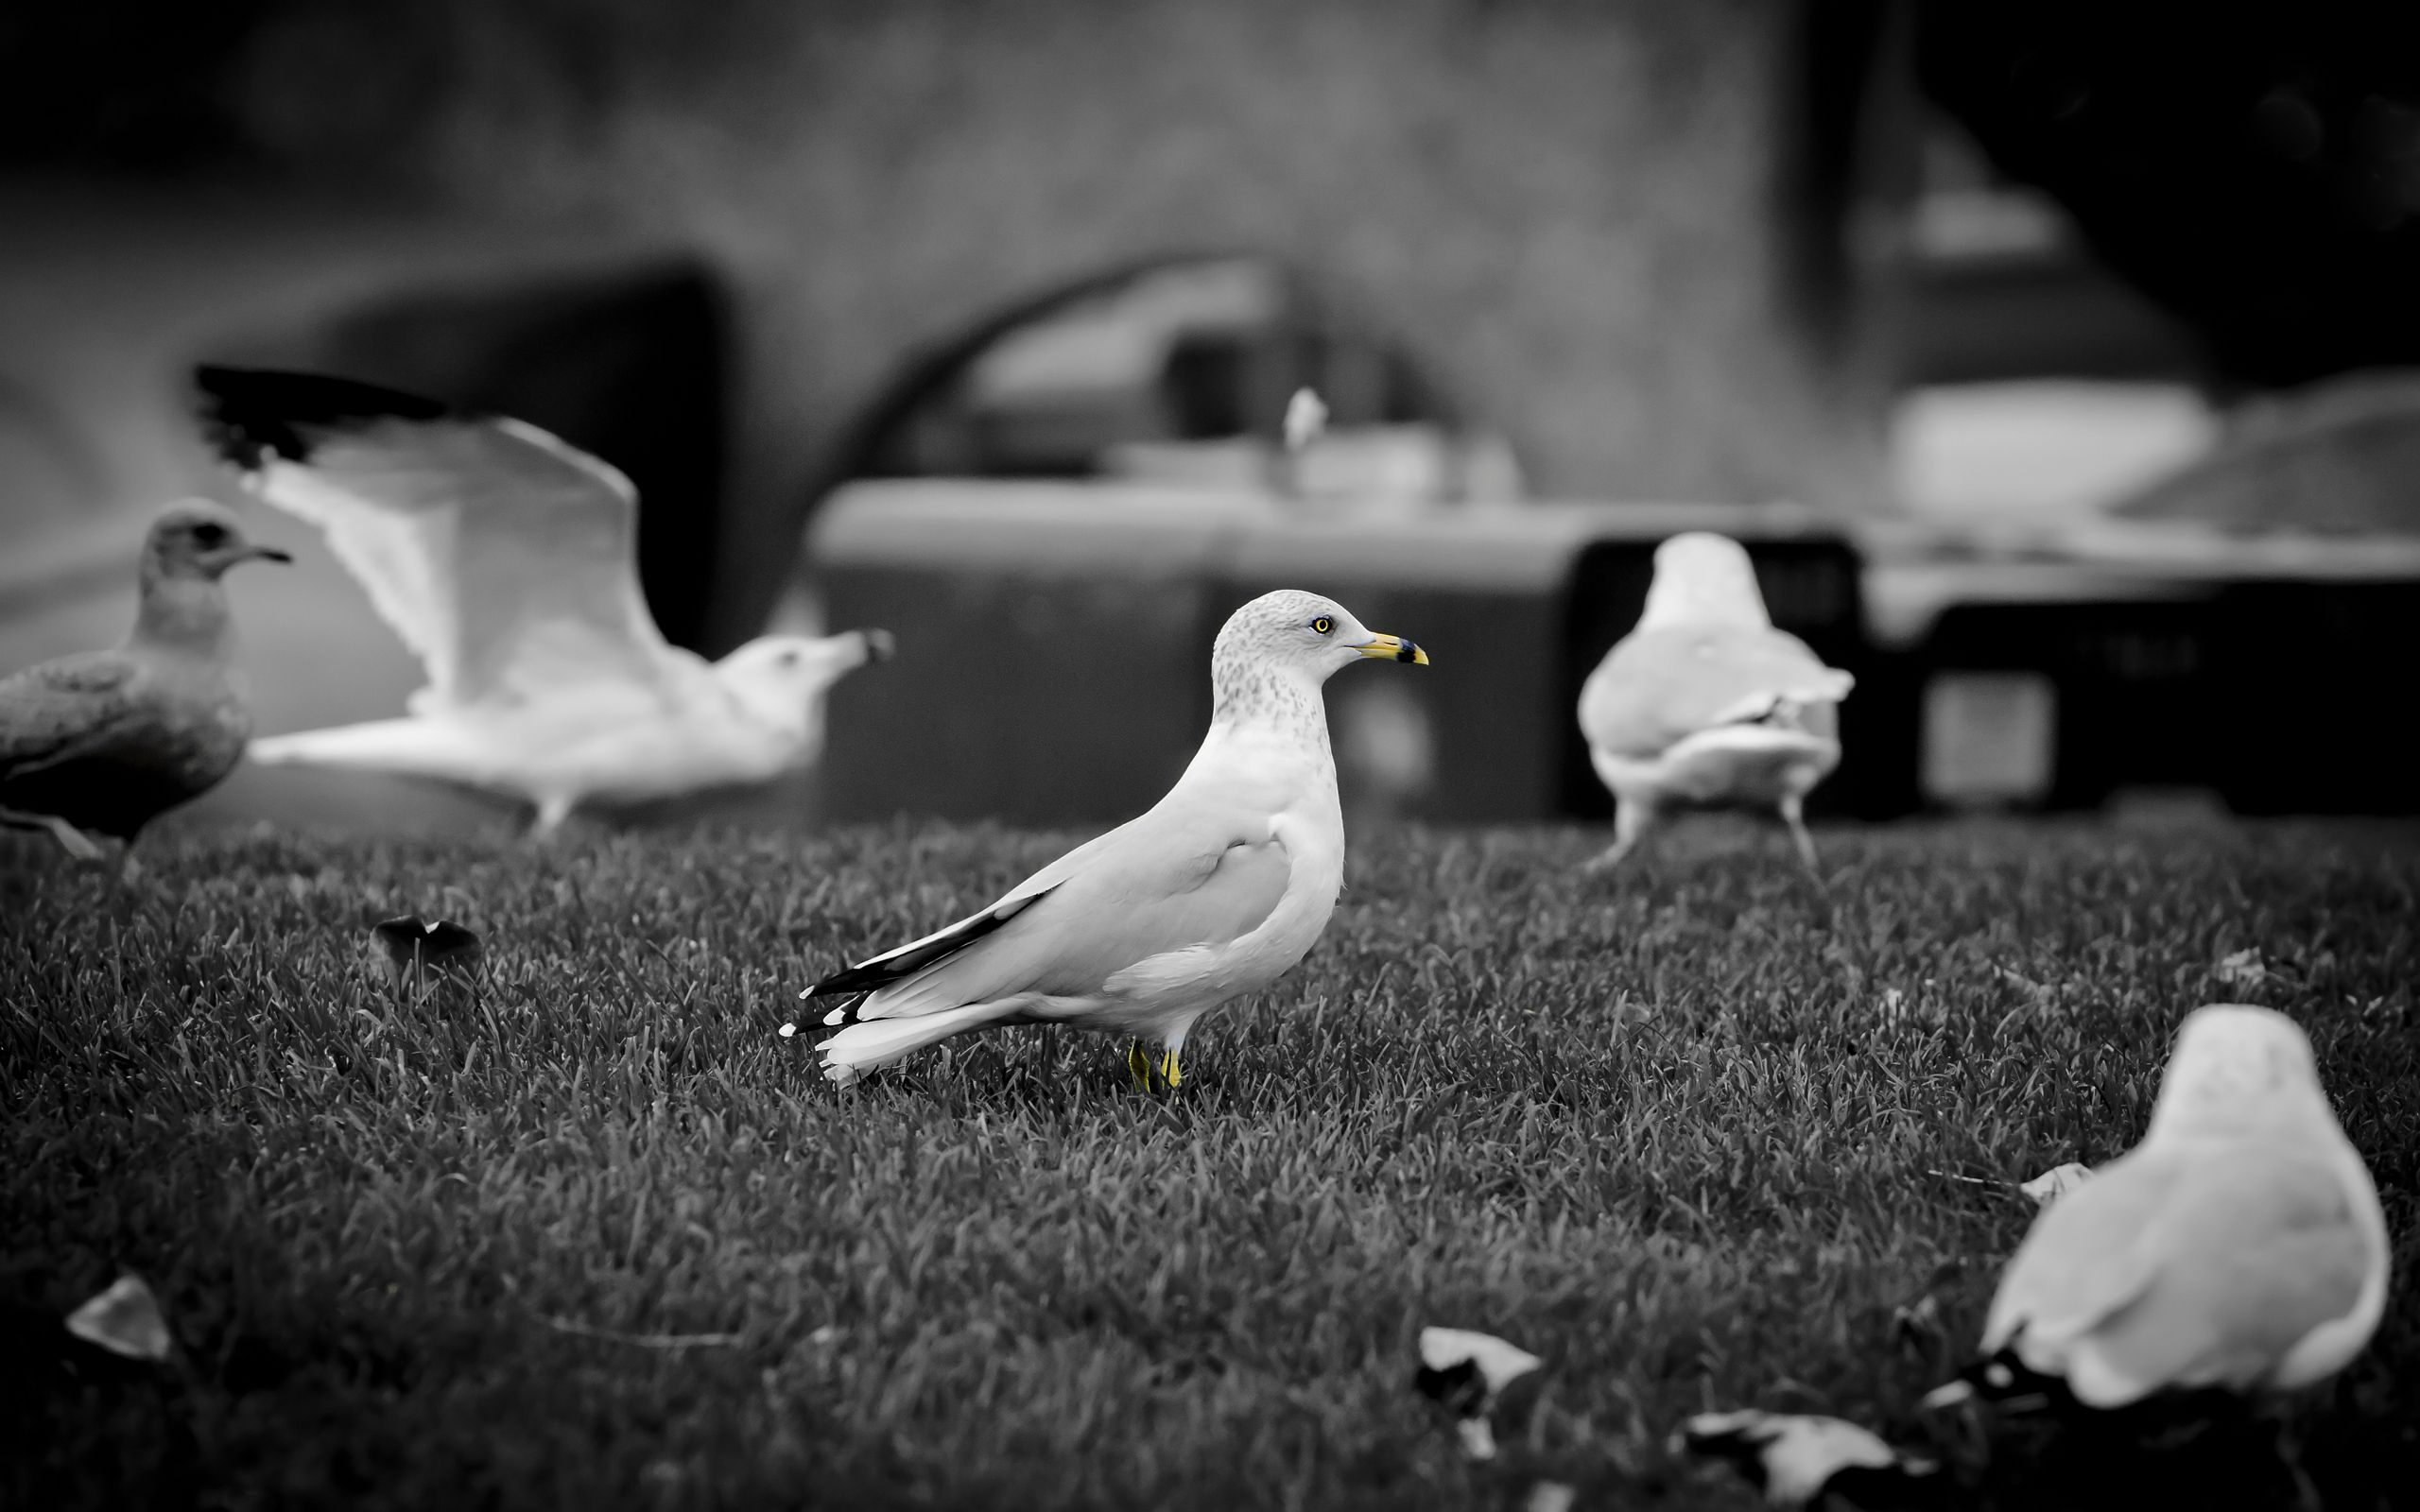 116160 download wallpaper Animals, Gull, Seagull, Grass, Flock, Birds screensavers and pictures for free